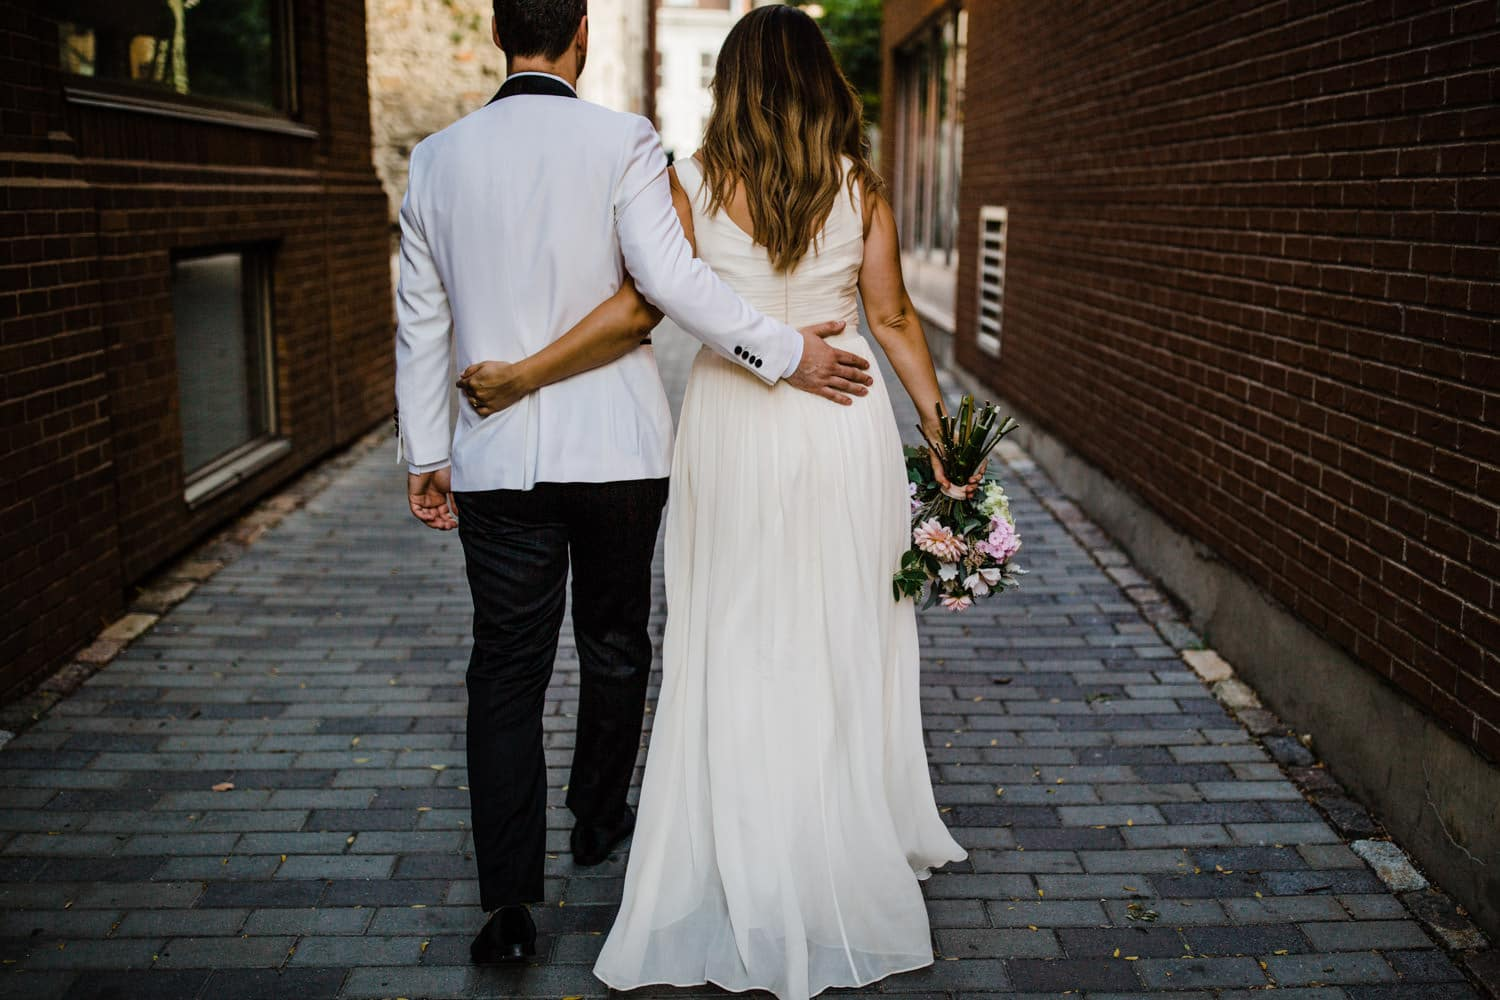 couple walk through alleyway together - summer wedding at the sussex contemporary